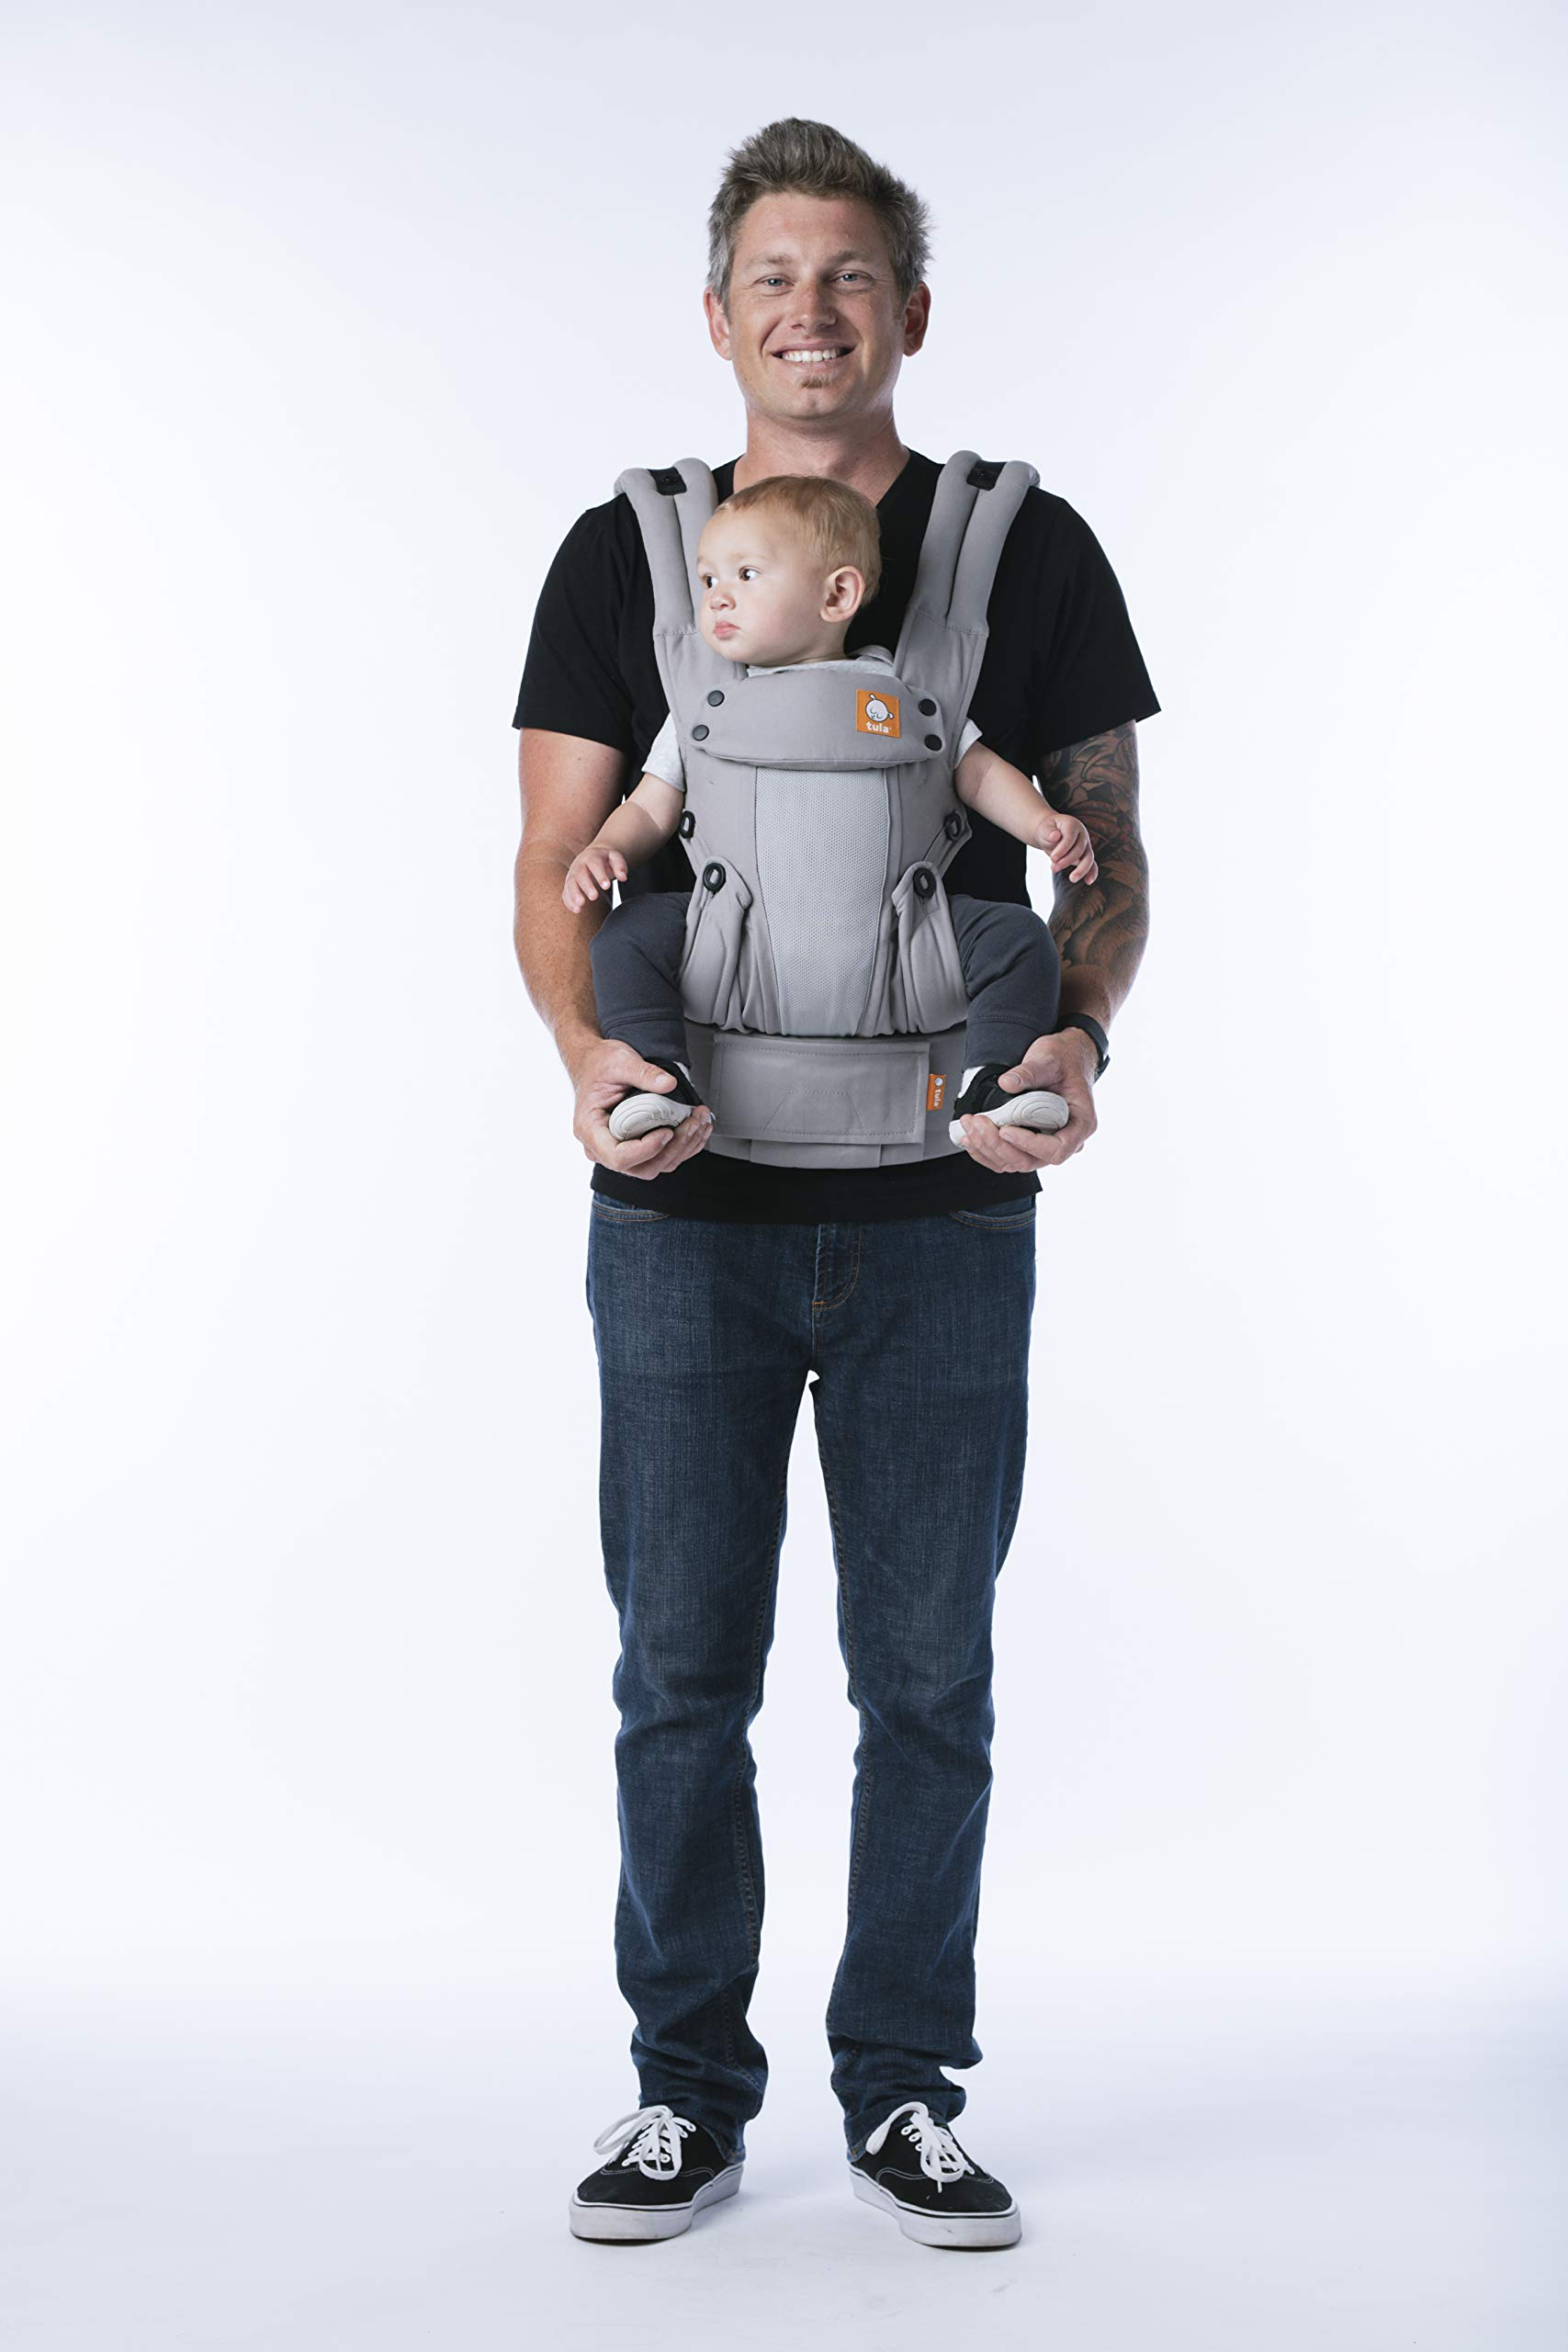 Baby Tula Coast Explore Mesh Baby Carrier 7 - 45 lb, Adjustable Newborn to Toddler Carrier, Multiple Ergonomic Positions Front and Back, Breathable - Coast Overcast, Light Gray with Light Gray Mesh Tula STAY COOL MESH CARRIER PANEL: Large mesh panel provides extra ventilation for optimal breathability to keep wearer and baby cool. BREATHABLE & LIGHTWEIGHT MATERIAL: Soft and lightweight 100% cotton with a large breathable mesh panel and hood that's easy to clean and machine washable. EVERY CARRY POSITION YOUR BABY WILL NEED, INCLUDING FACING OUT: Multiple positions to carry baby including front facing out*, facing in, and back carry. Each position provides a natural, ergonomic position best for comfortable carrying that promotes healthy hip and spine development for baby. 4